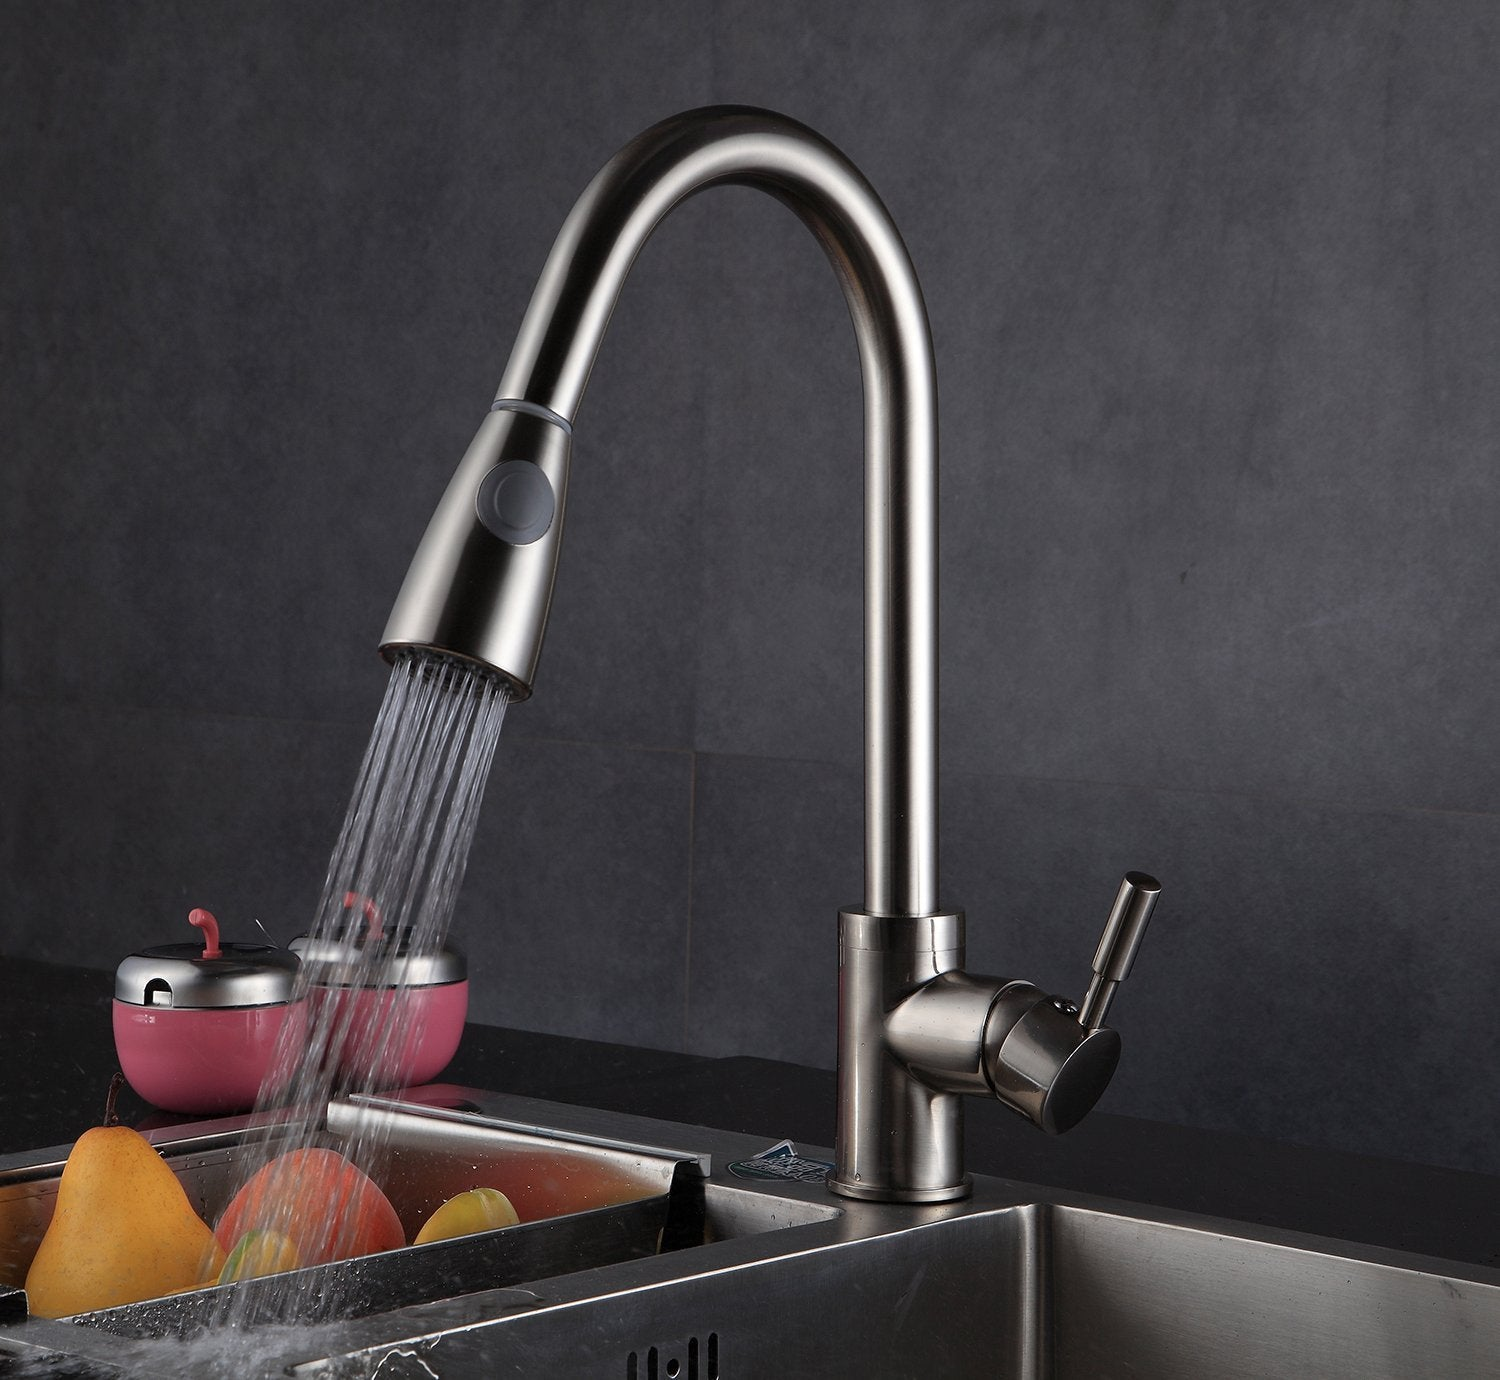 Buy-Hive Kitchen Faucet Brushed Nickel Pull Out Sprayer Home Sink ...